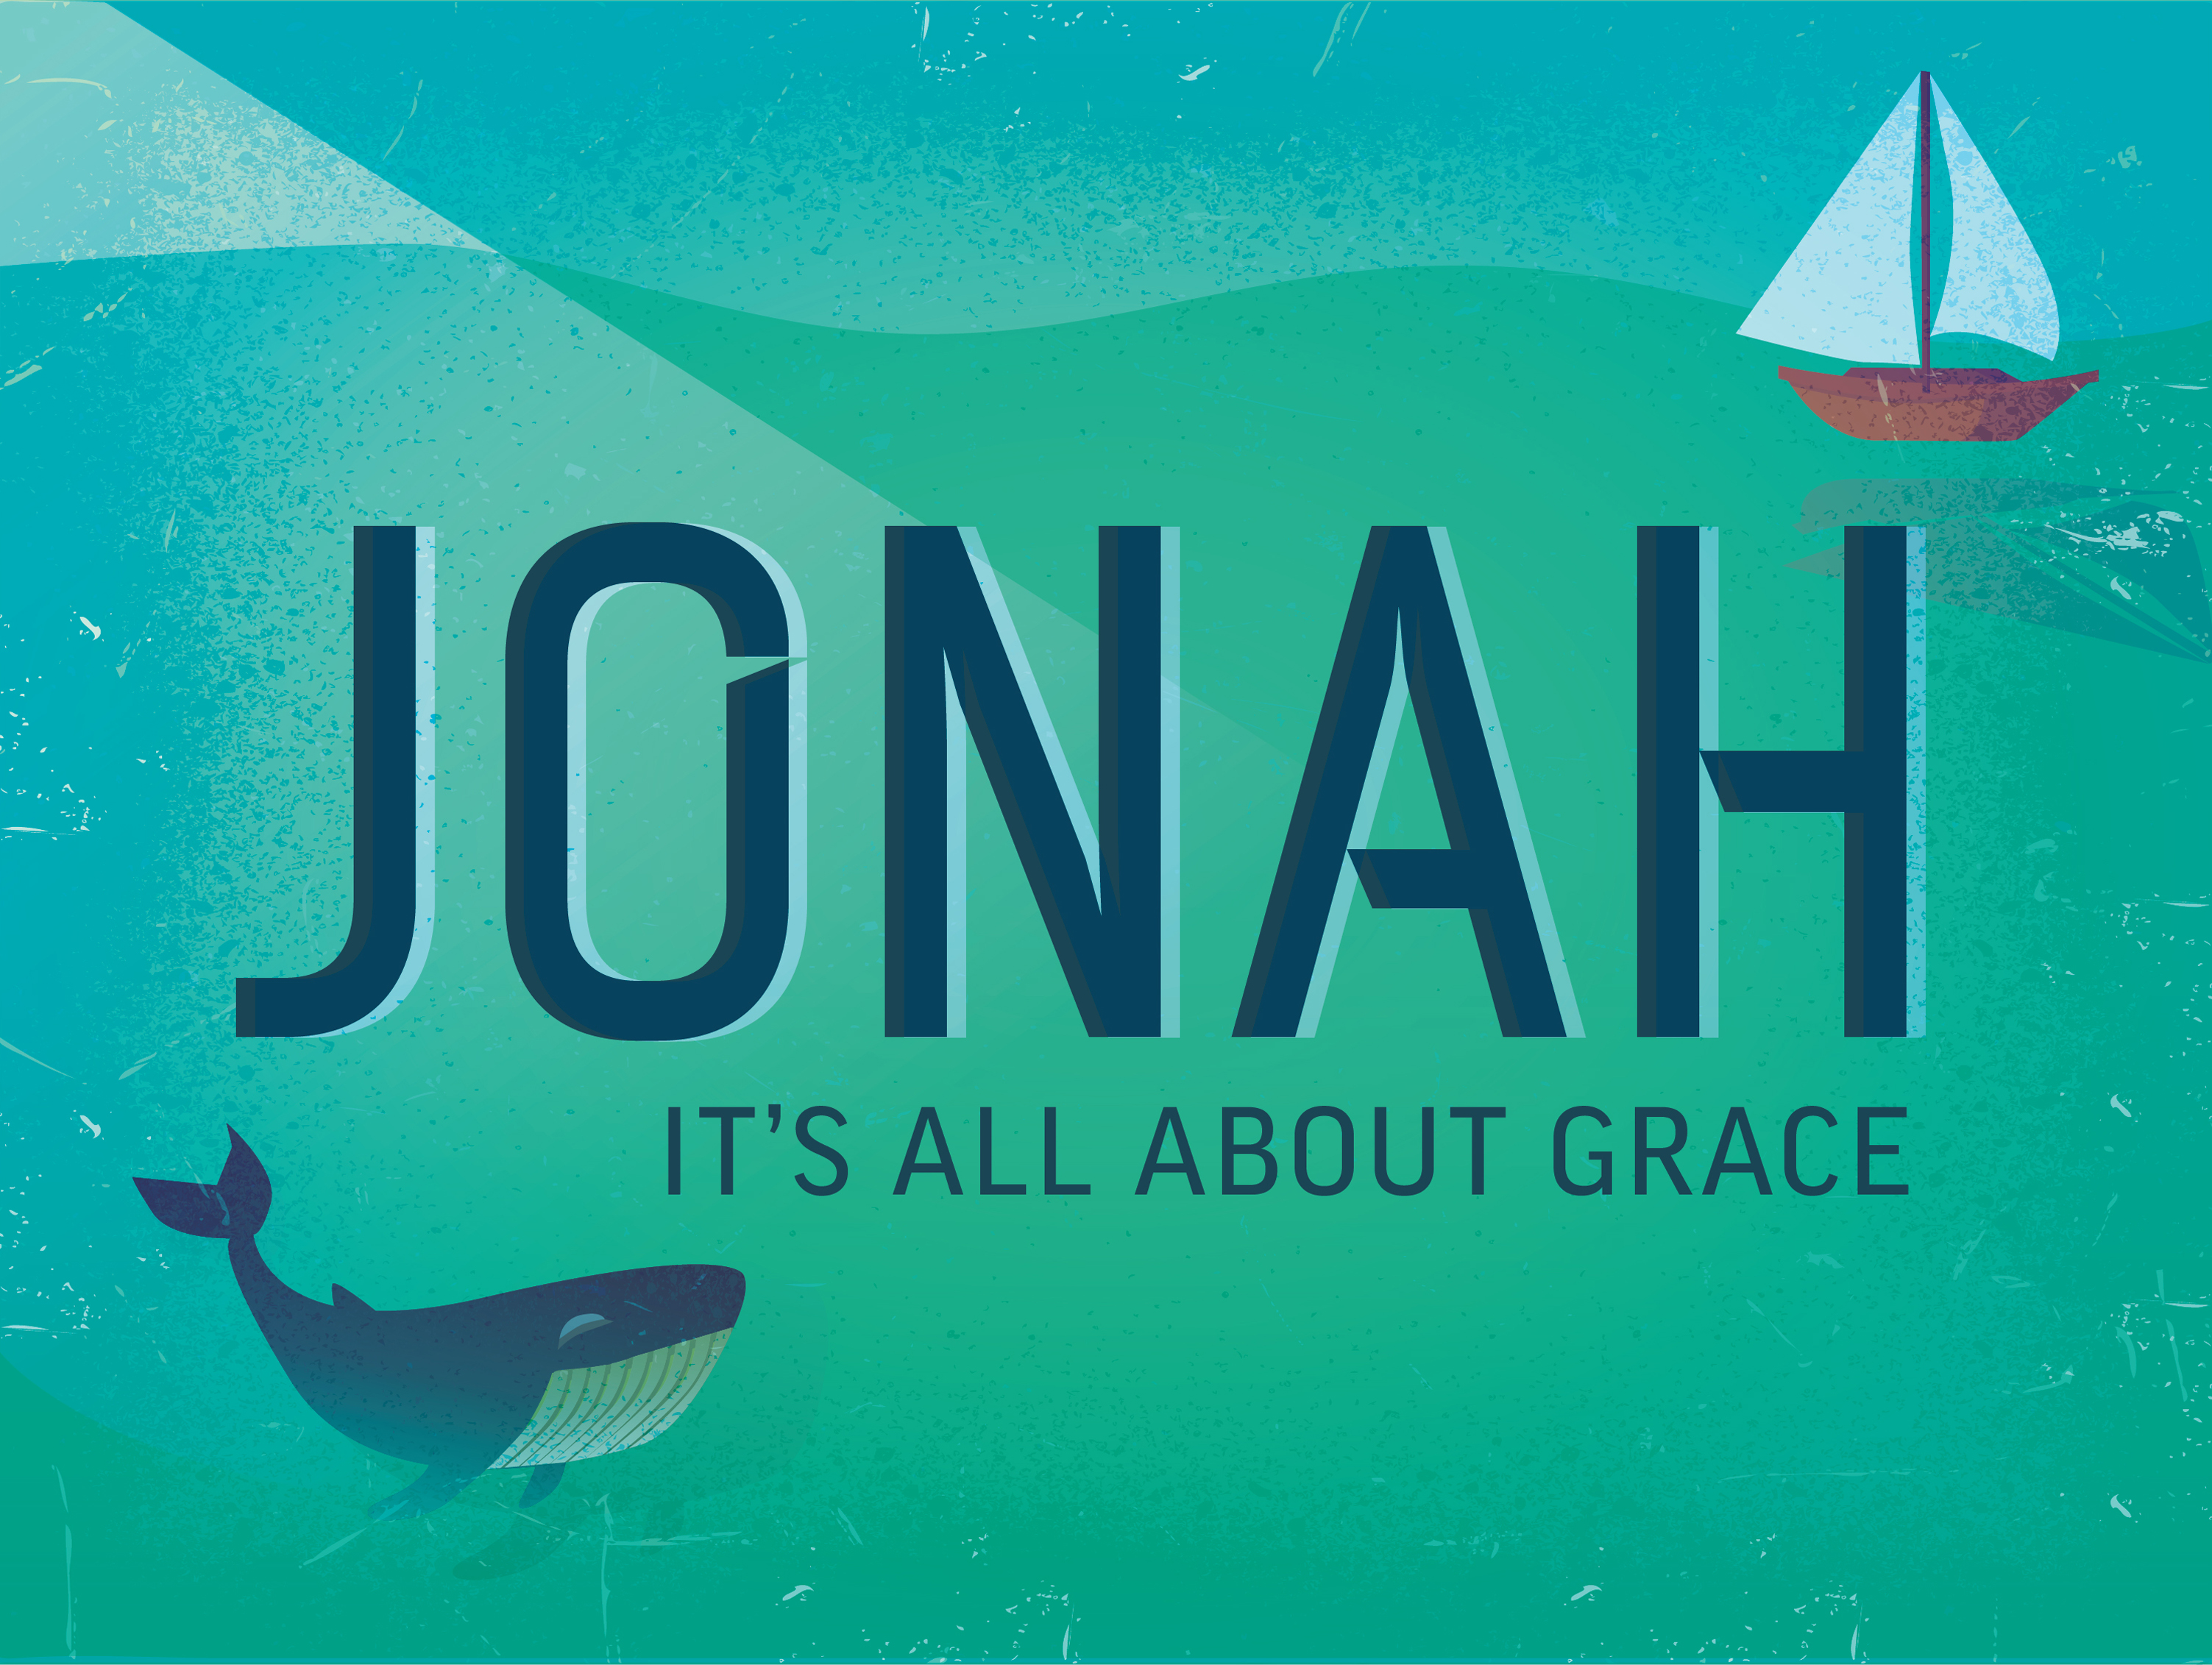 Jonah - It's All About Grace